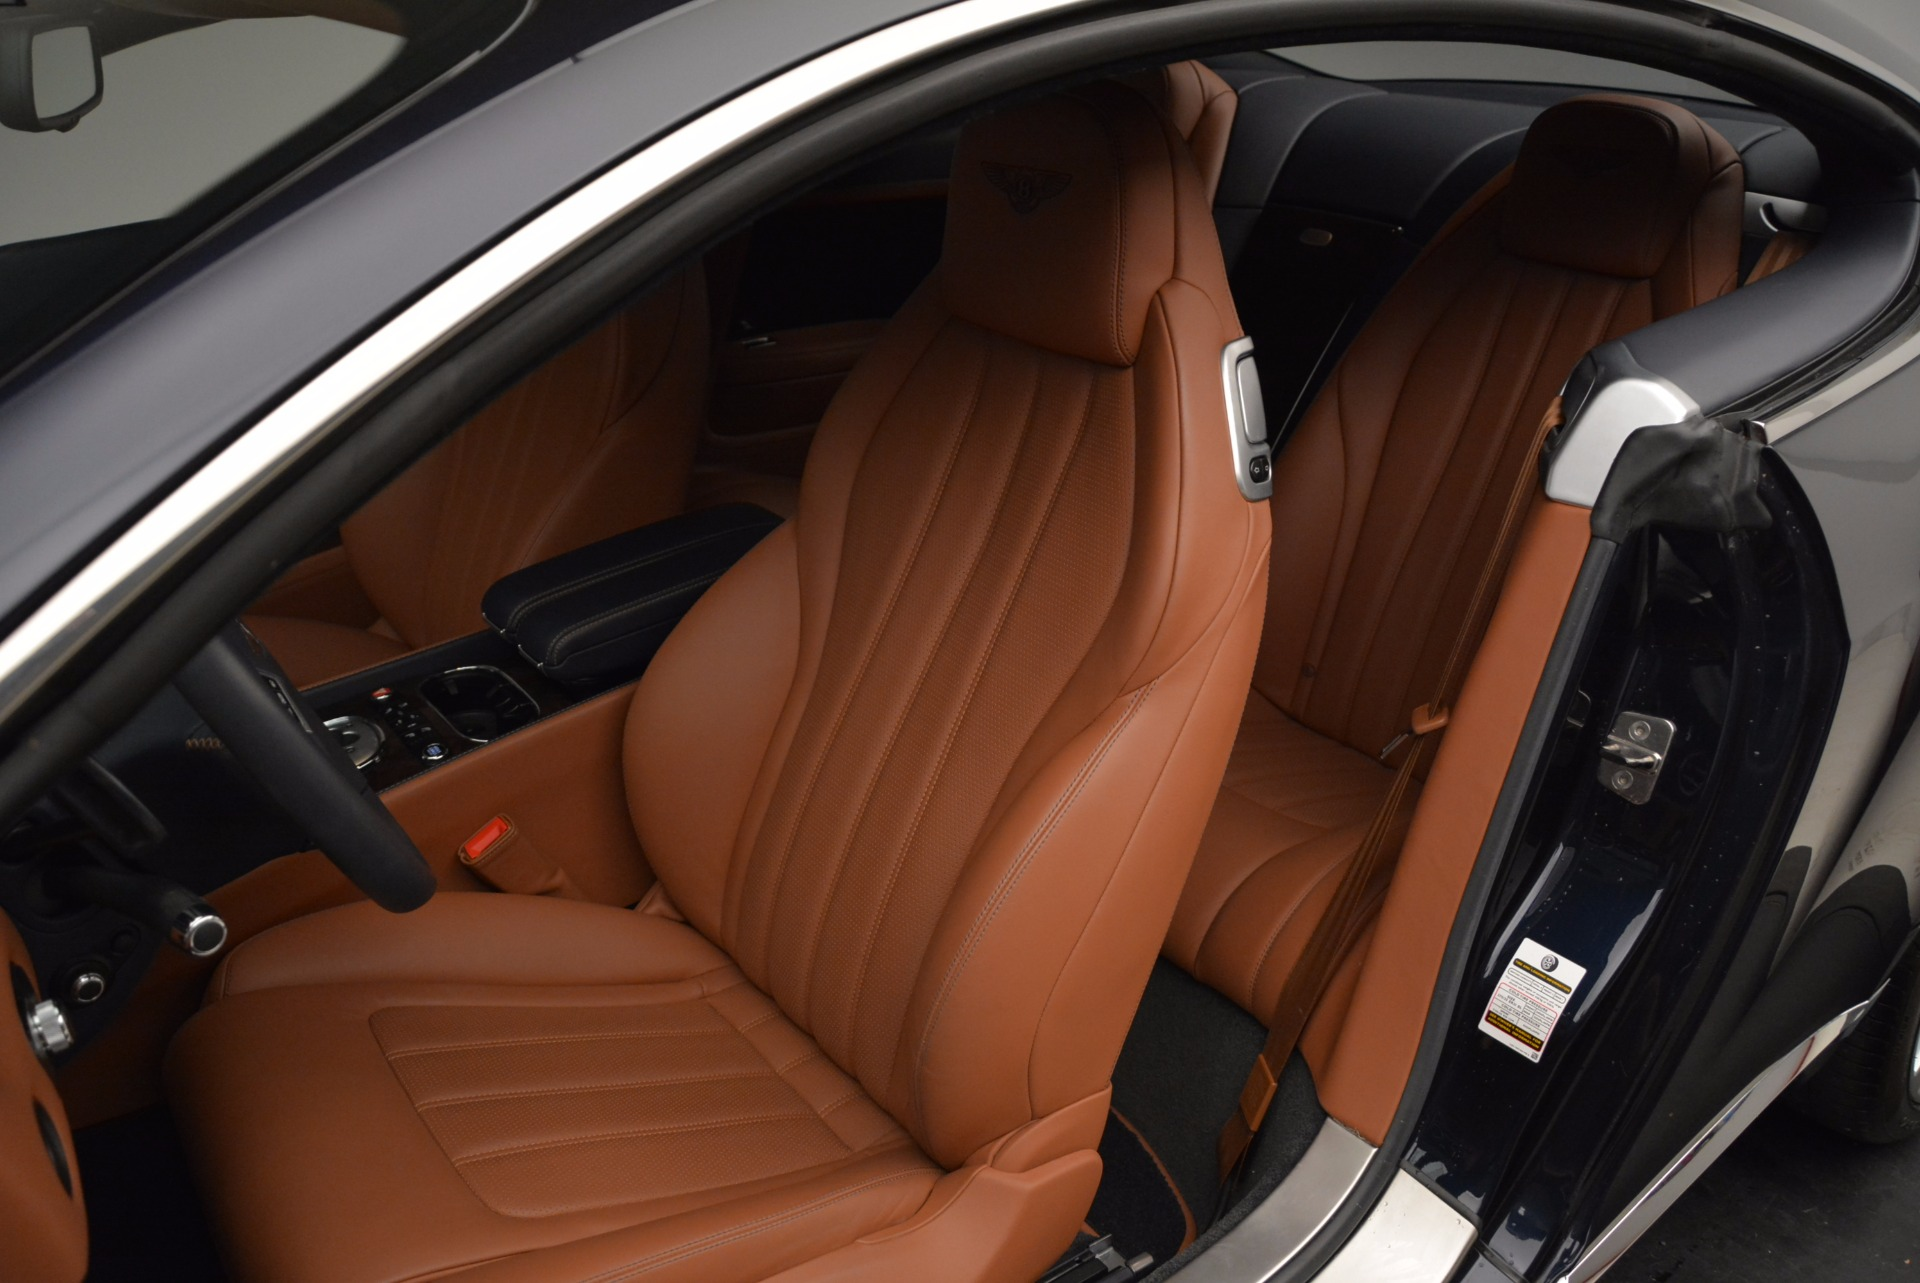 Used 2014 Bentley Continental GT W12 For Sale In Westport, CT 1845_p24